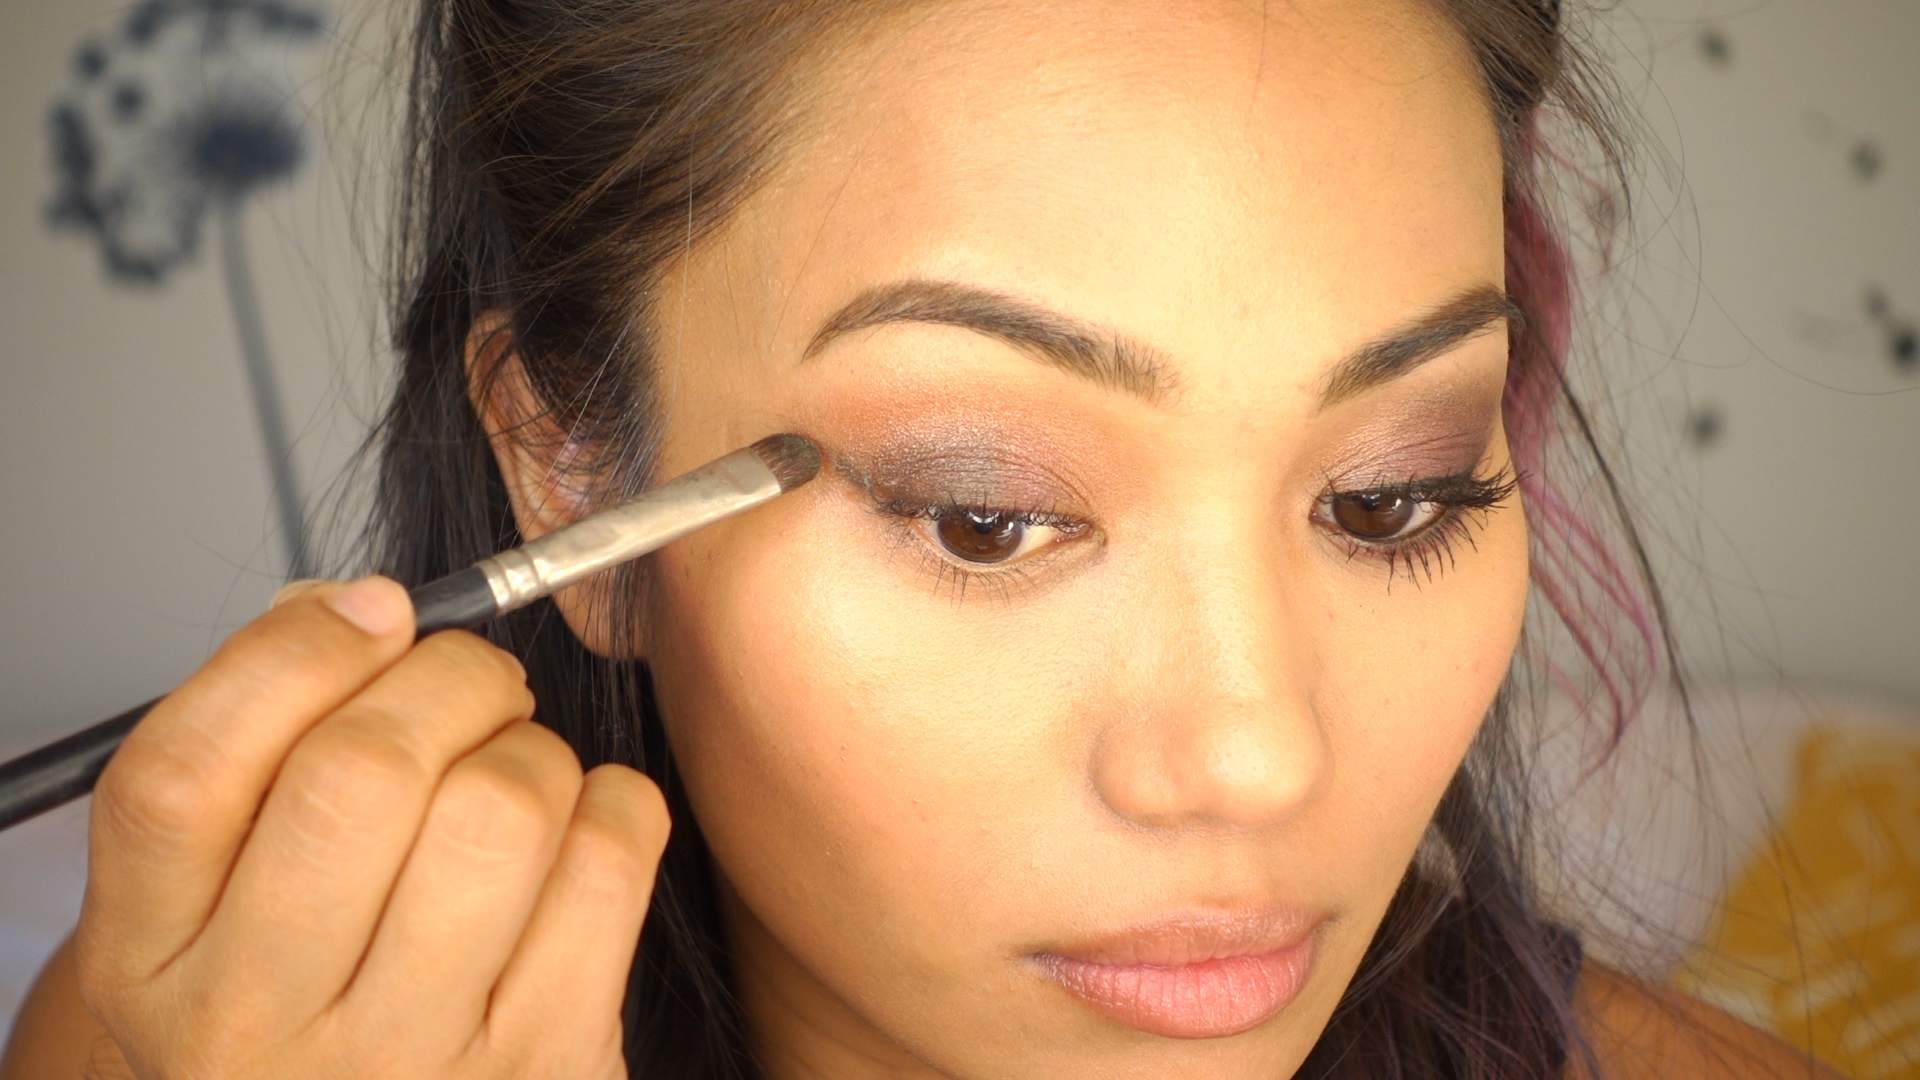 Continue to blend that color into your crease, stopping at the halfway point on your lid. I like to focus my darker colors in this outer half of my eye so ...